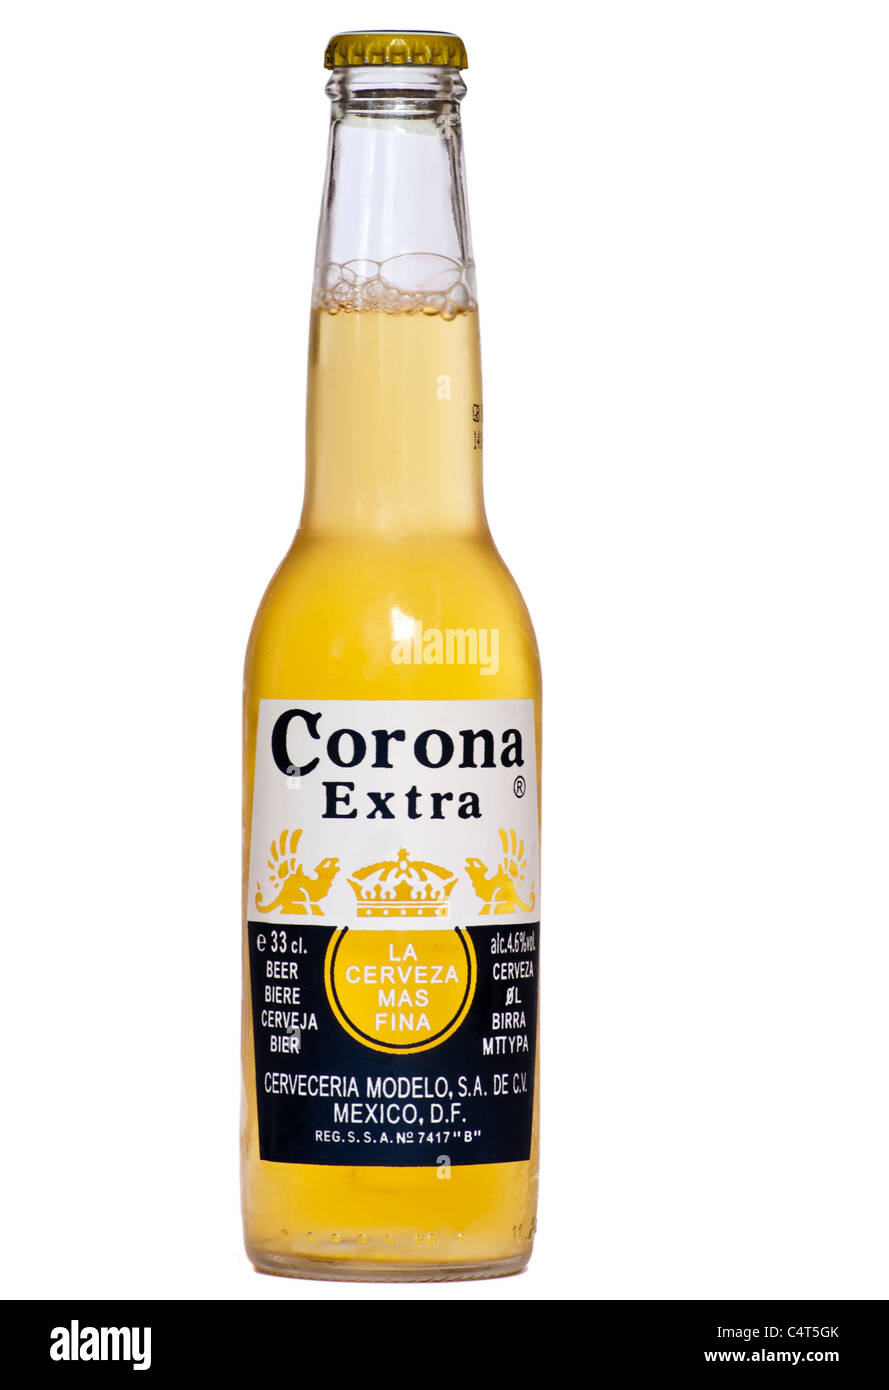 Bottle Of Corona Extra Mexican Beer - Stock Image